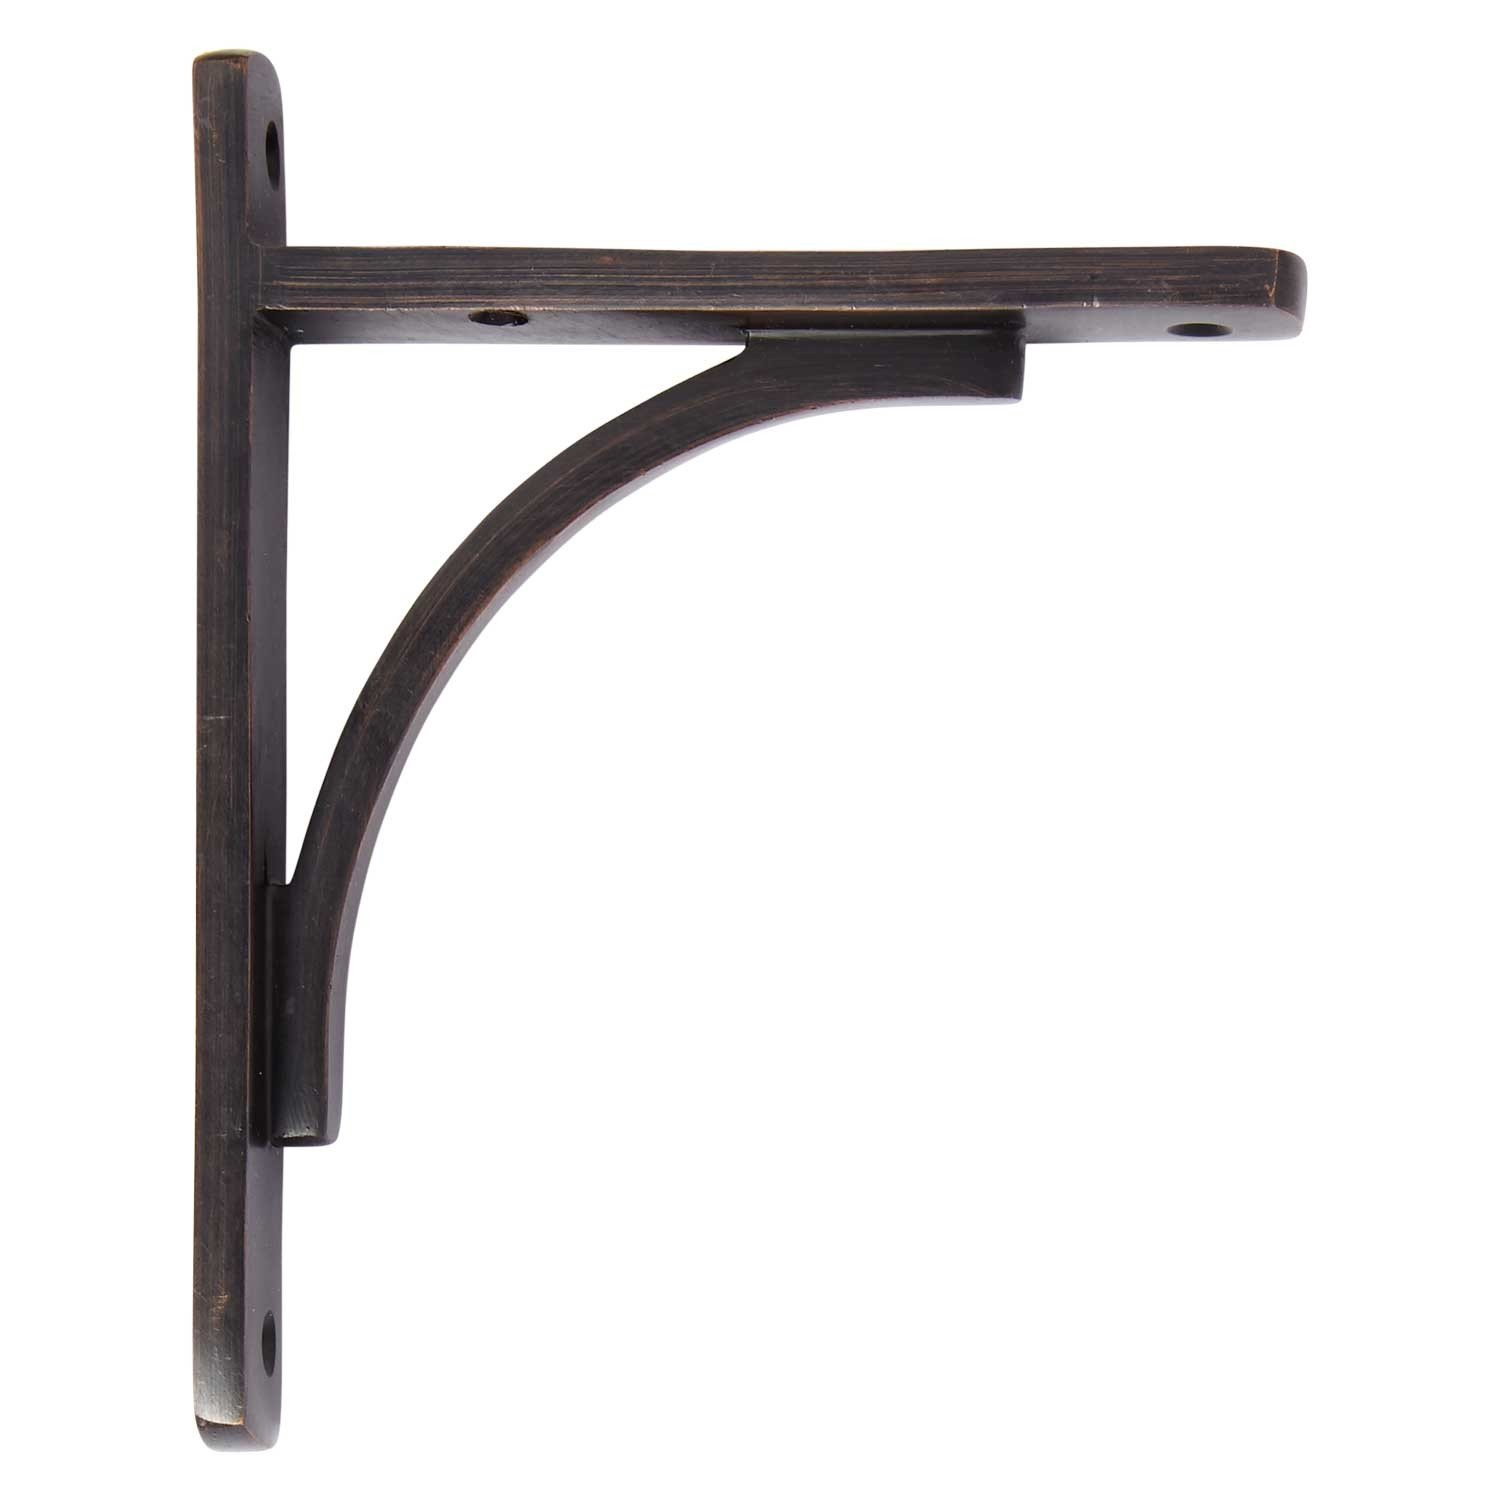 Naiture Brass Rustic Shelf Bracket In Oil Rubbed Bronze Finish by SH